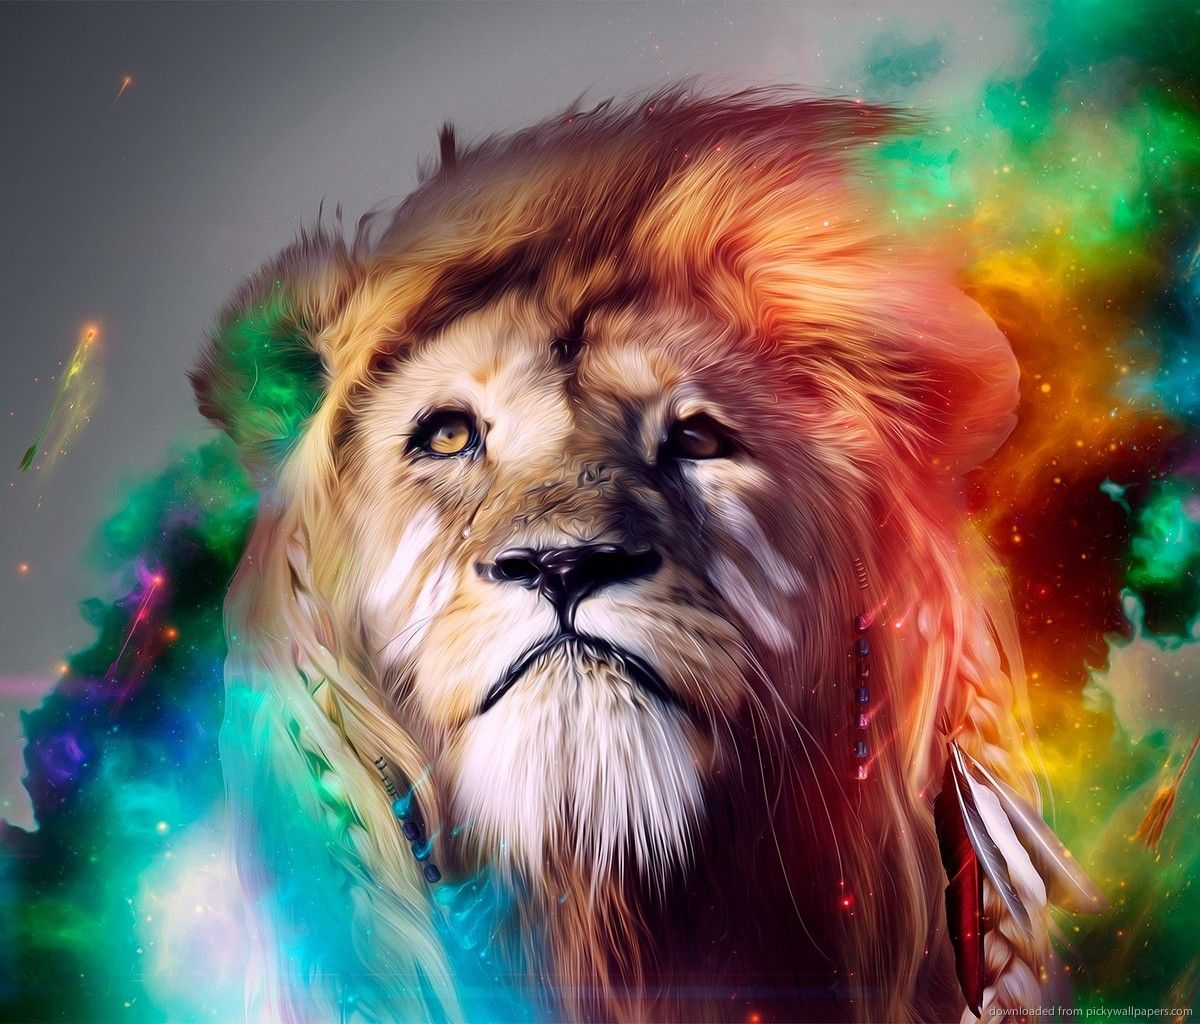 1200x1024 Colorful Lion Art for Samsung Galaxy Tab | wallpaper | Pinterest ...